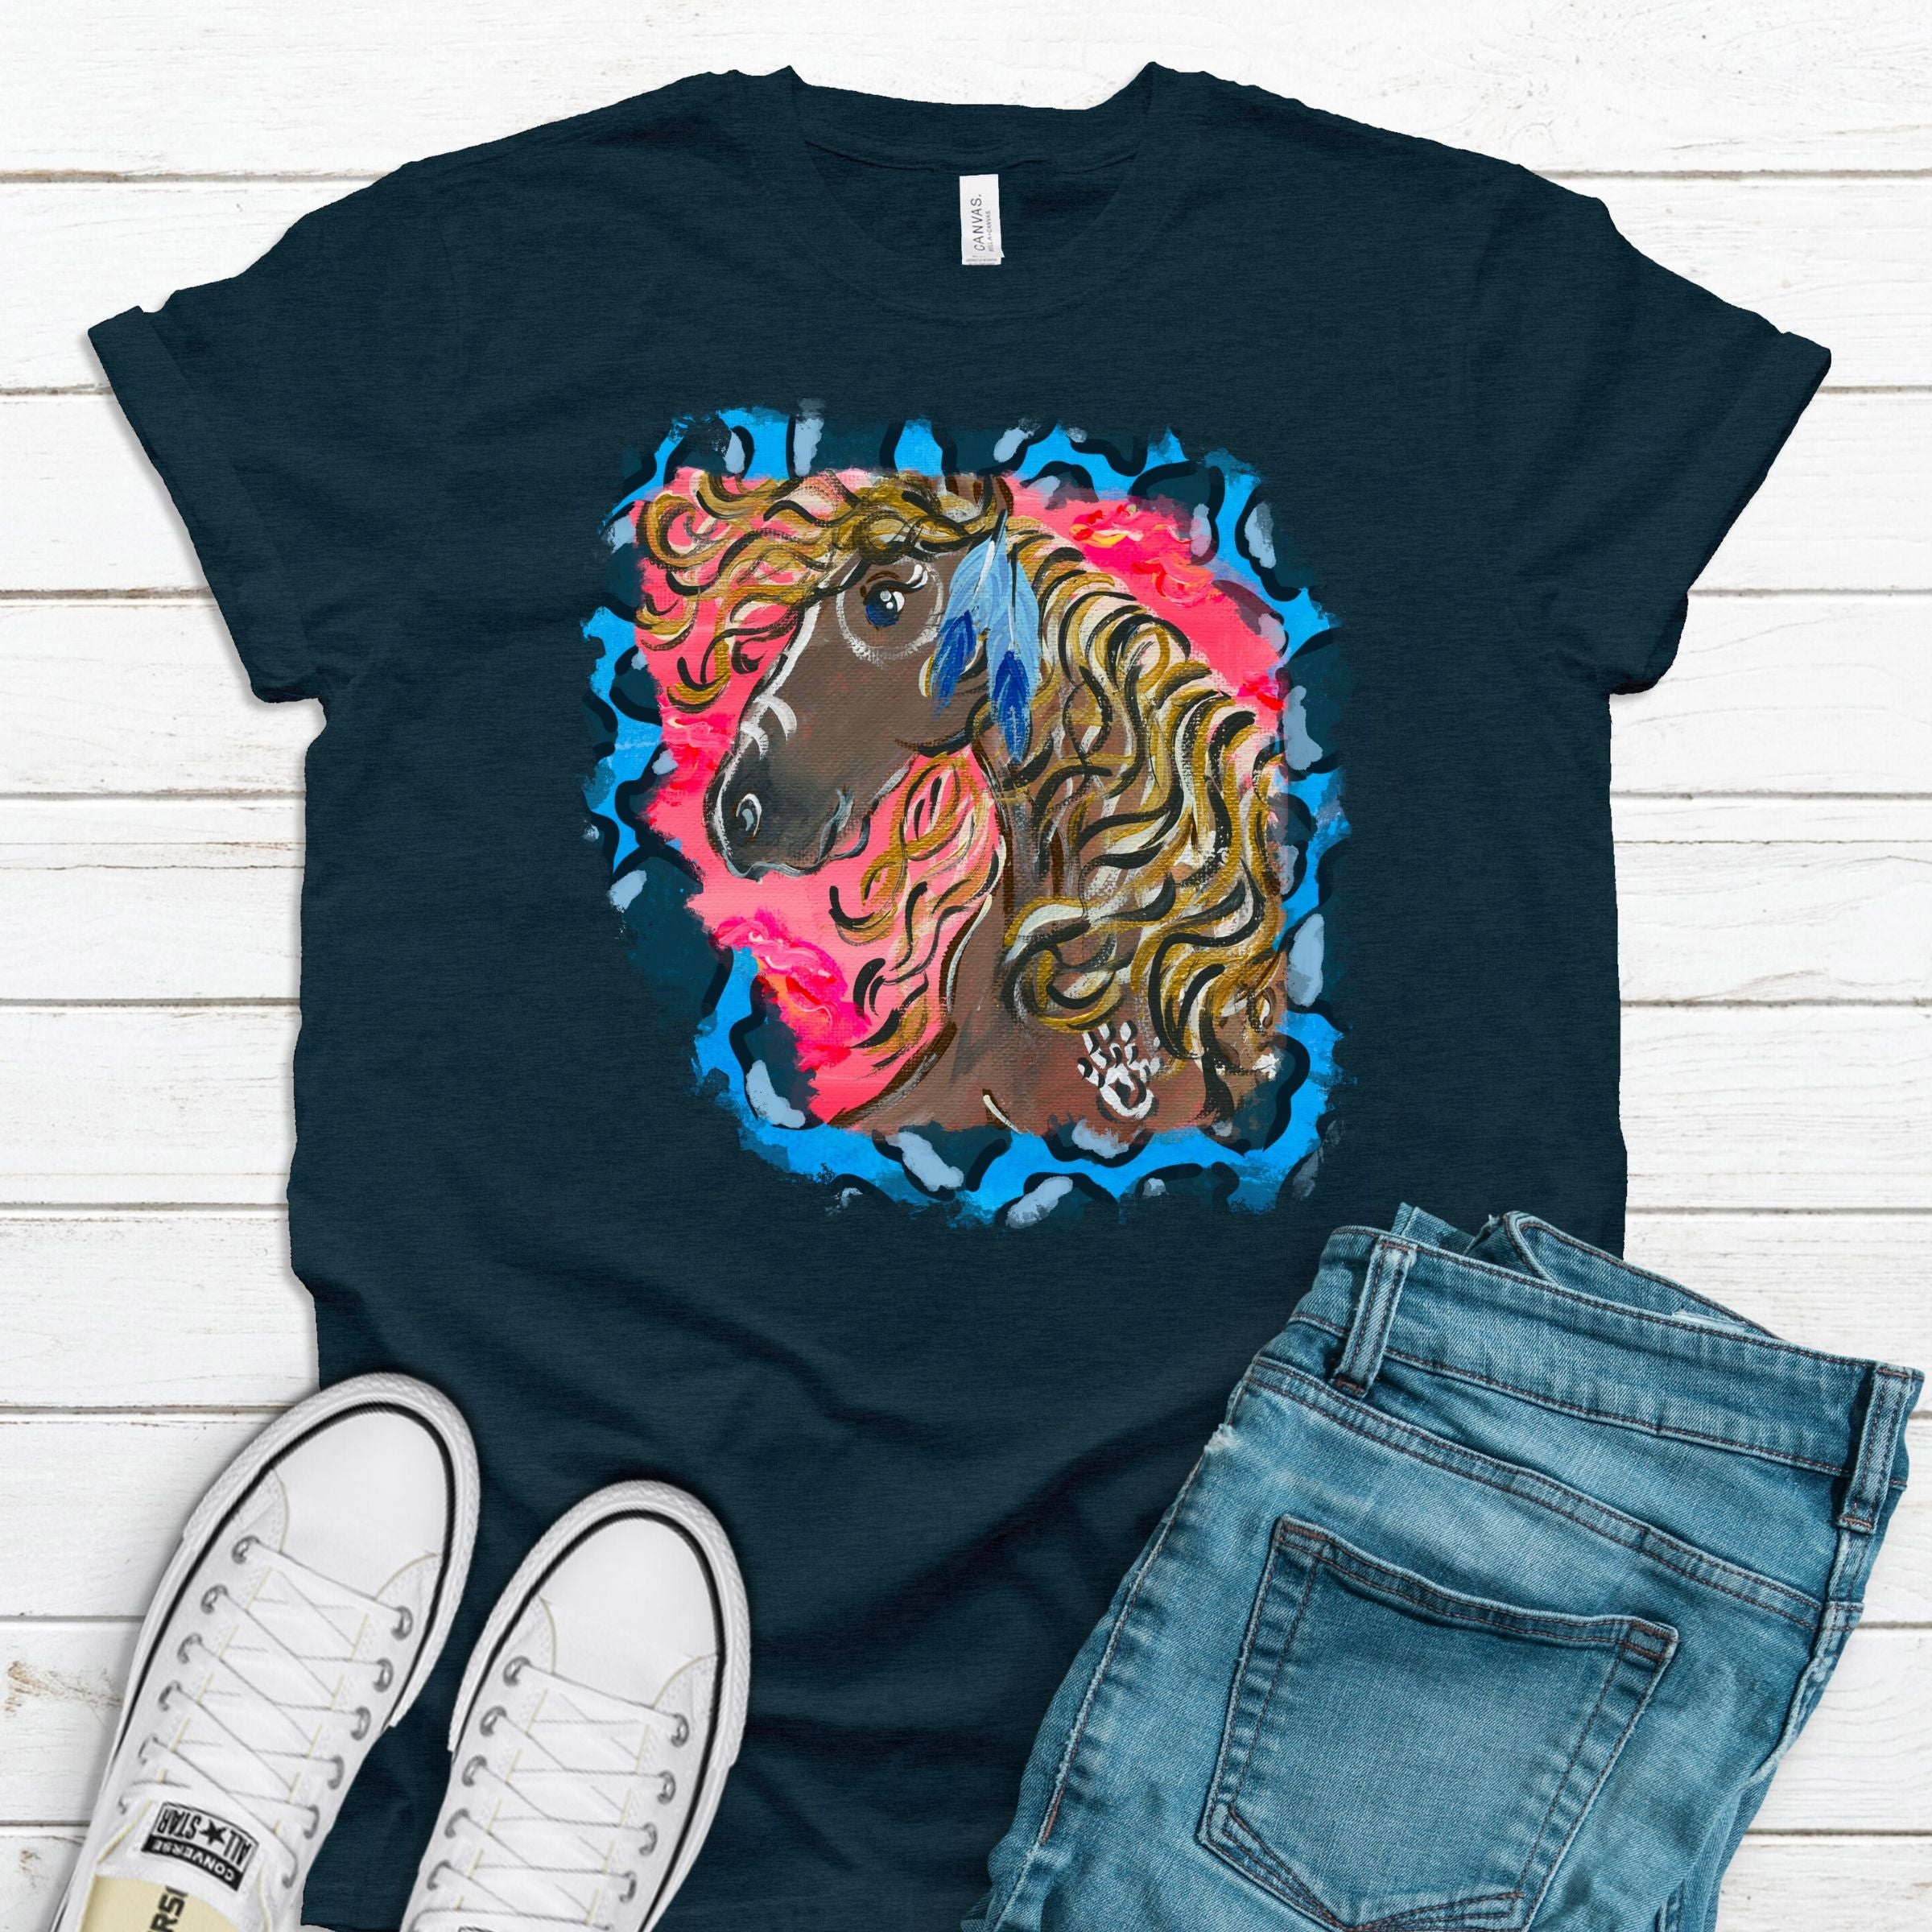 Wild Horse Blue Cheetah ~ Heather Navy ~ Adult T-Shirt-Boho, cheetah, DTG, gypsy, Heather Navy, hippie, Horse, native, western-Shop-Wholesale-Womens-Boutique-Custom-Graphic-Tees-Branding-Gifts